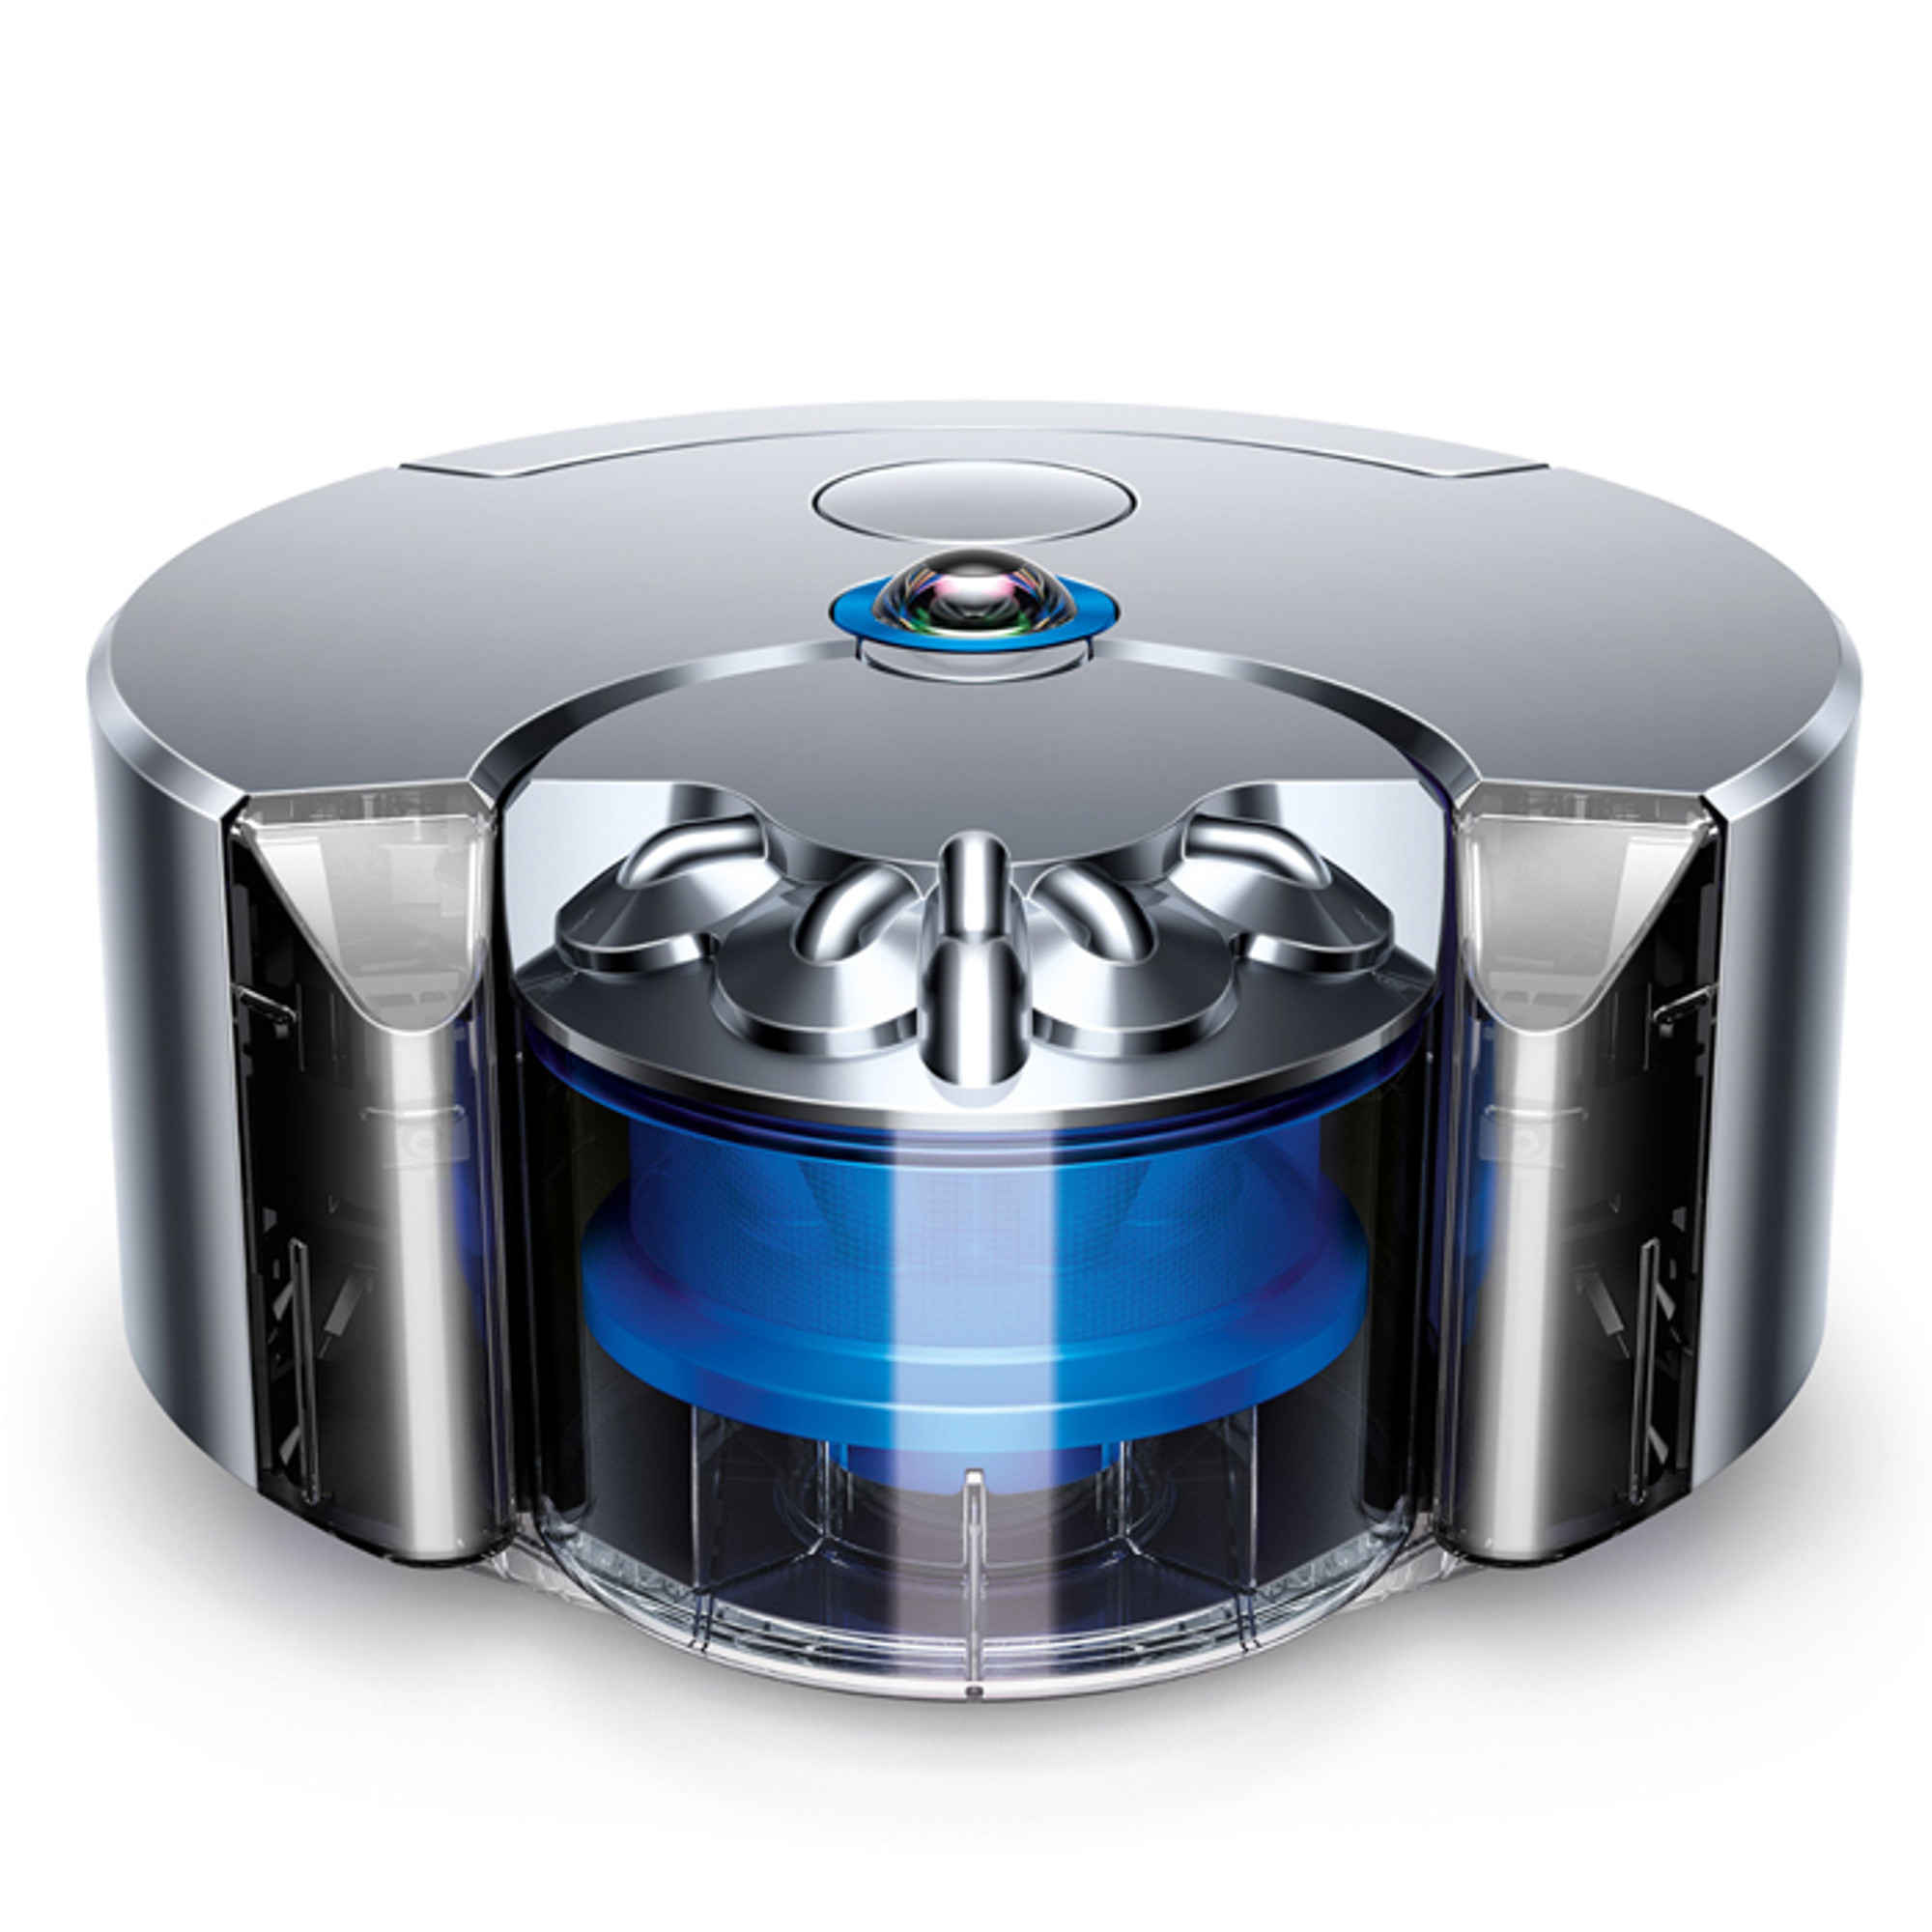 Buy Dyson 360 Eye Robot Vacuum Cleaner From Canada At Mchardyvac Com